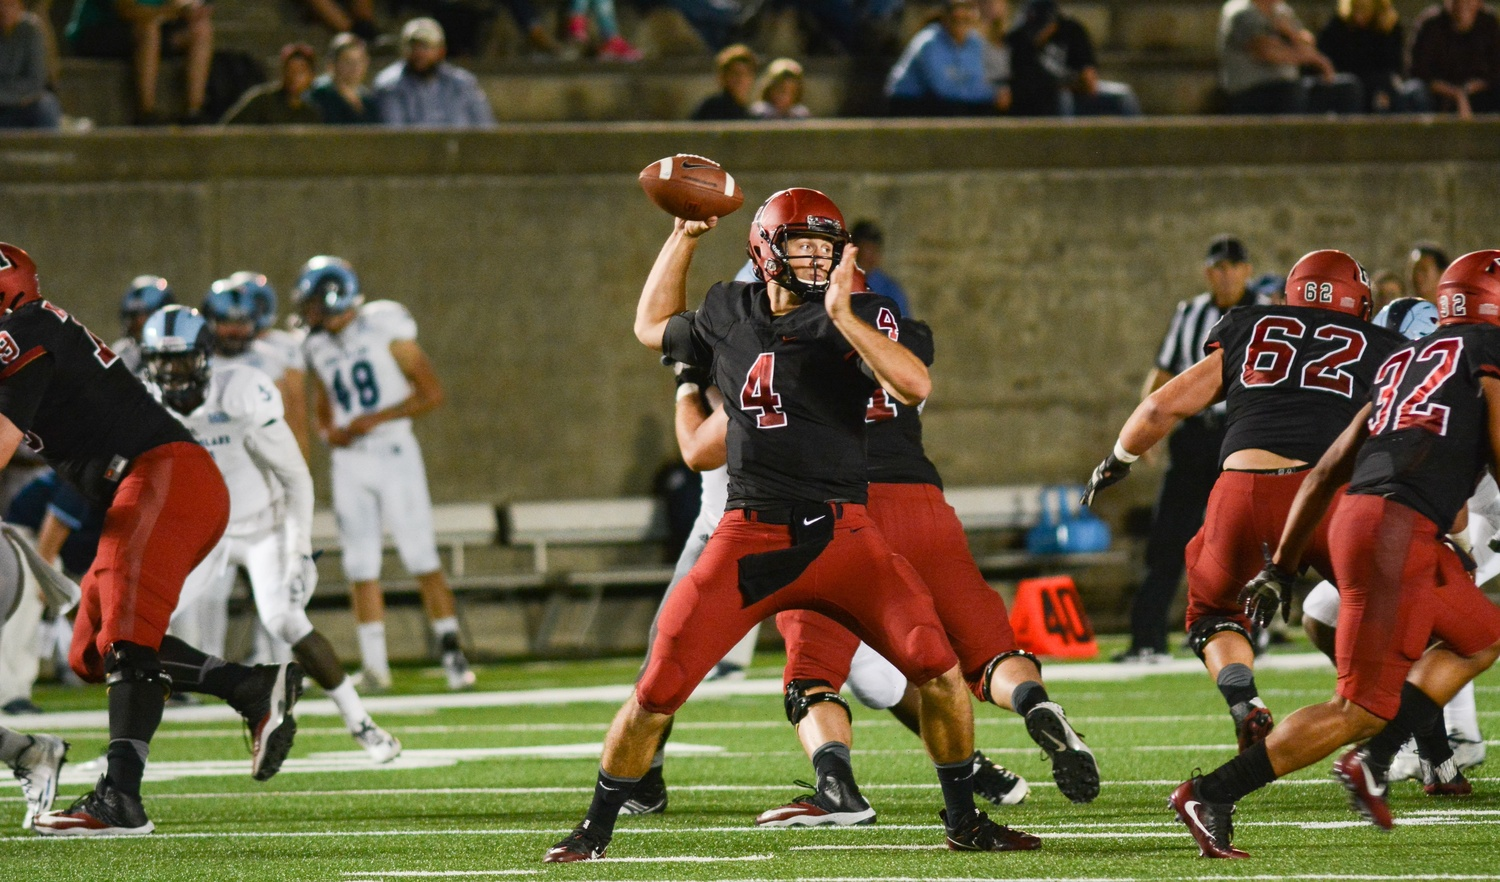 Last Friday night in Harvard Stadium, senior quarterback Joe Viviano started his first game and accounted for 341 total yards, leading the Crimson to a season-opening win over Rhode Island.